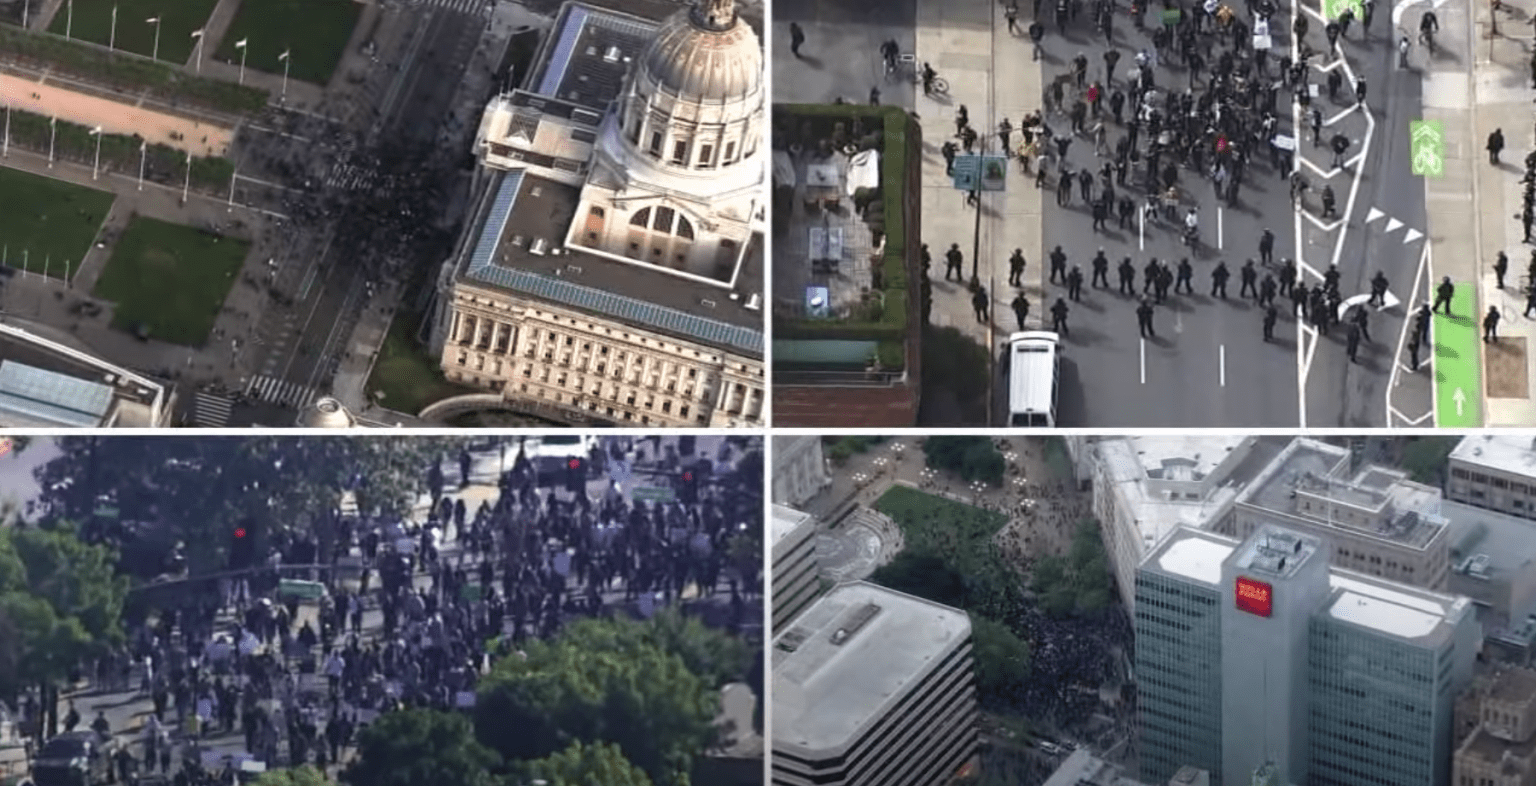 San Francisco police under fire for monitoring surveillance footage of protests